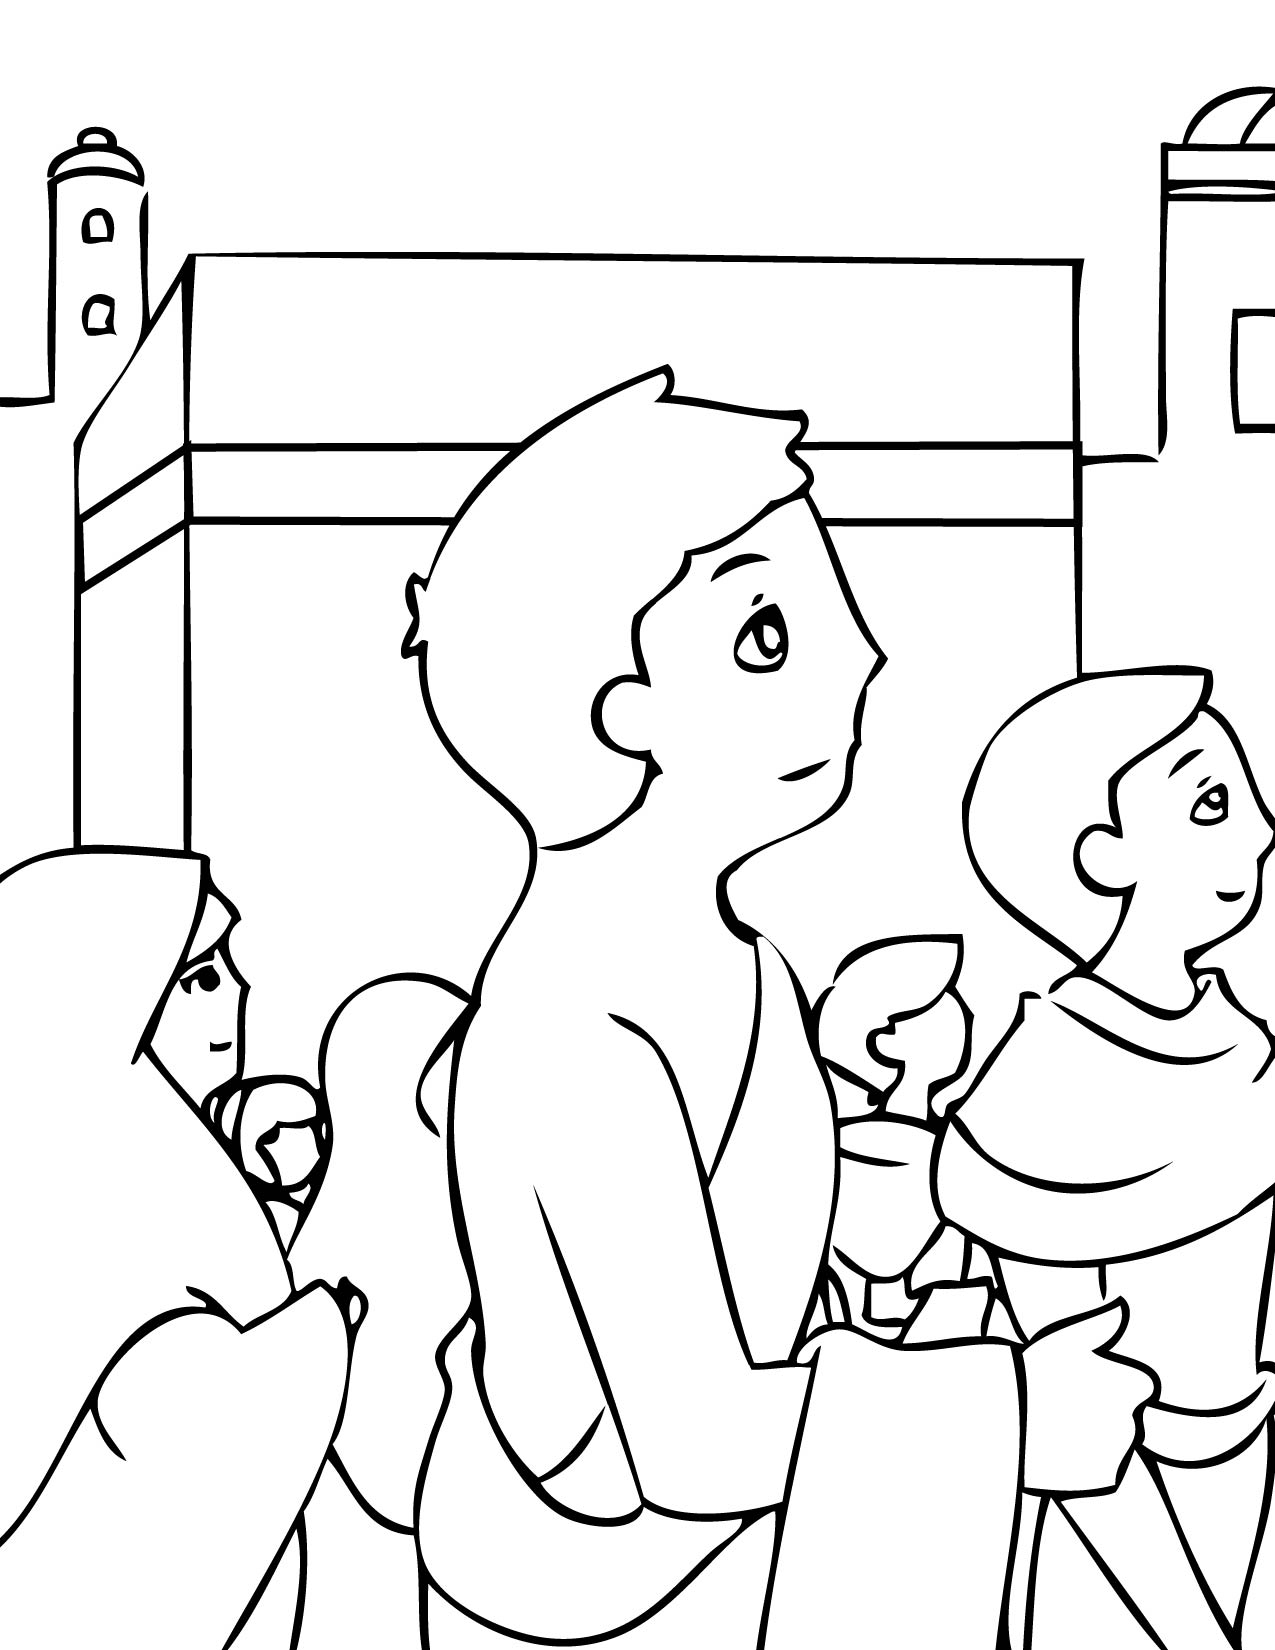 hajj coloring pages - photo #1